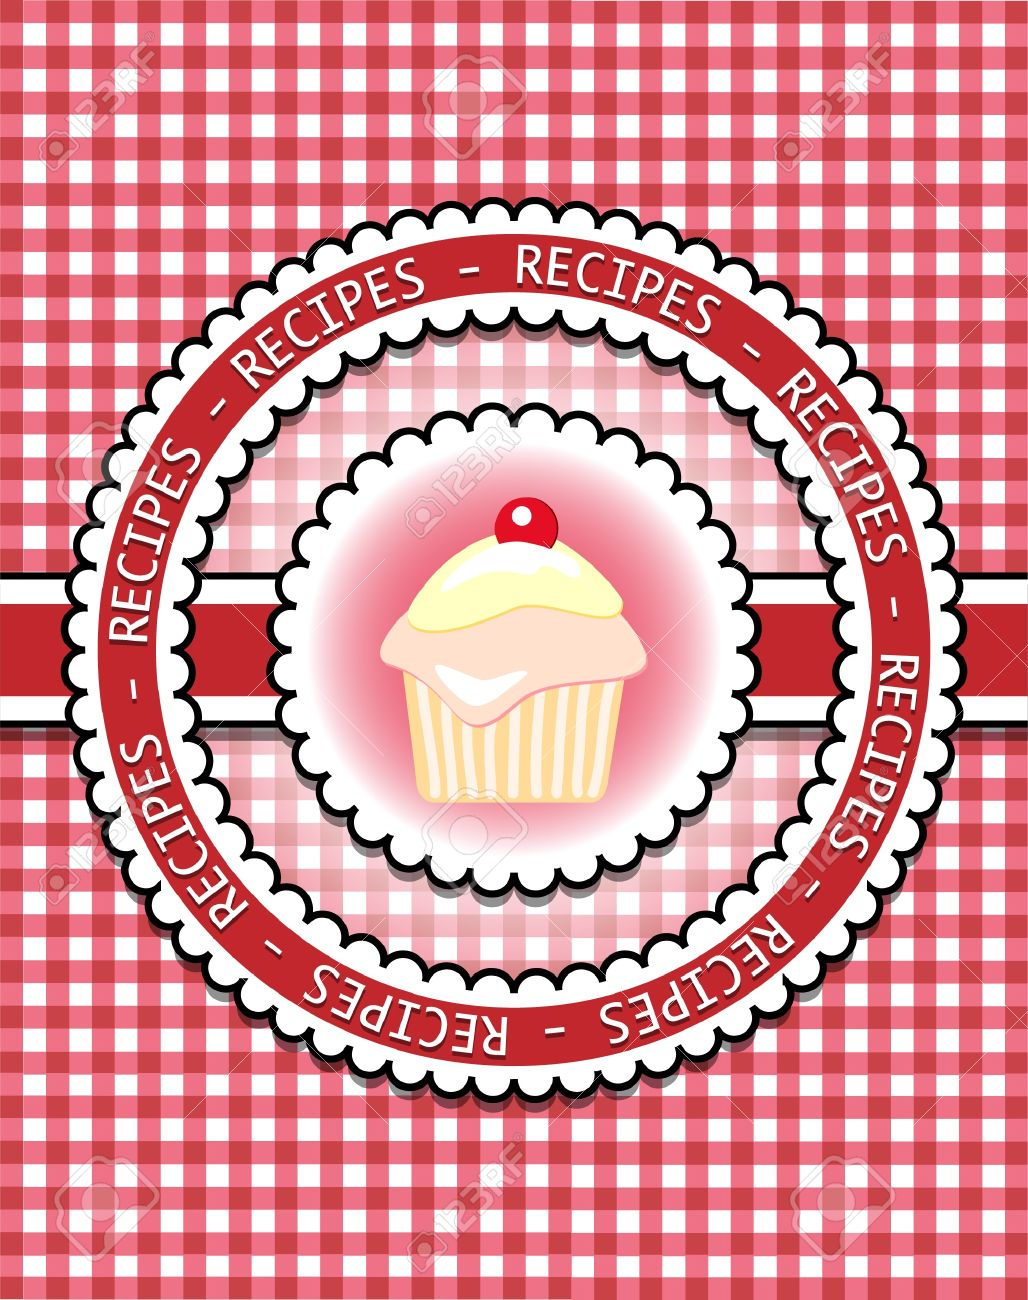 How to scrapbook a recipe book - Gingham Recipe Book Cover With Cupcake Scrapbook Style Stock Vector 10271999